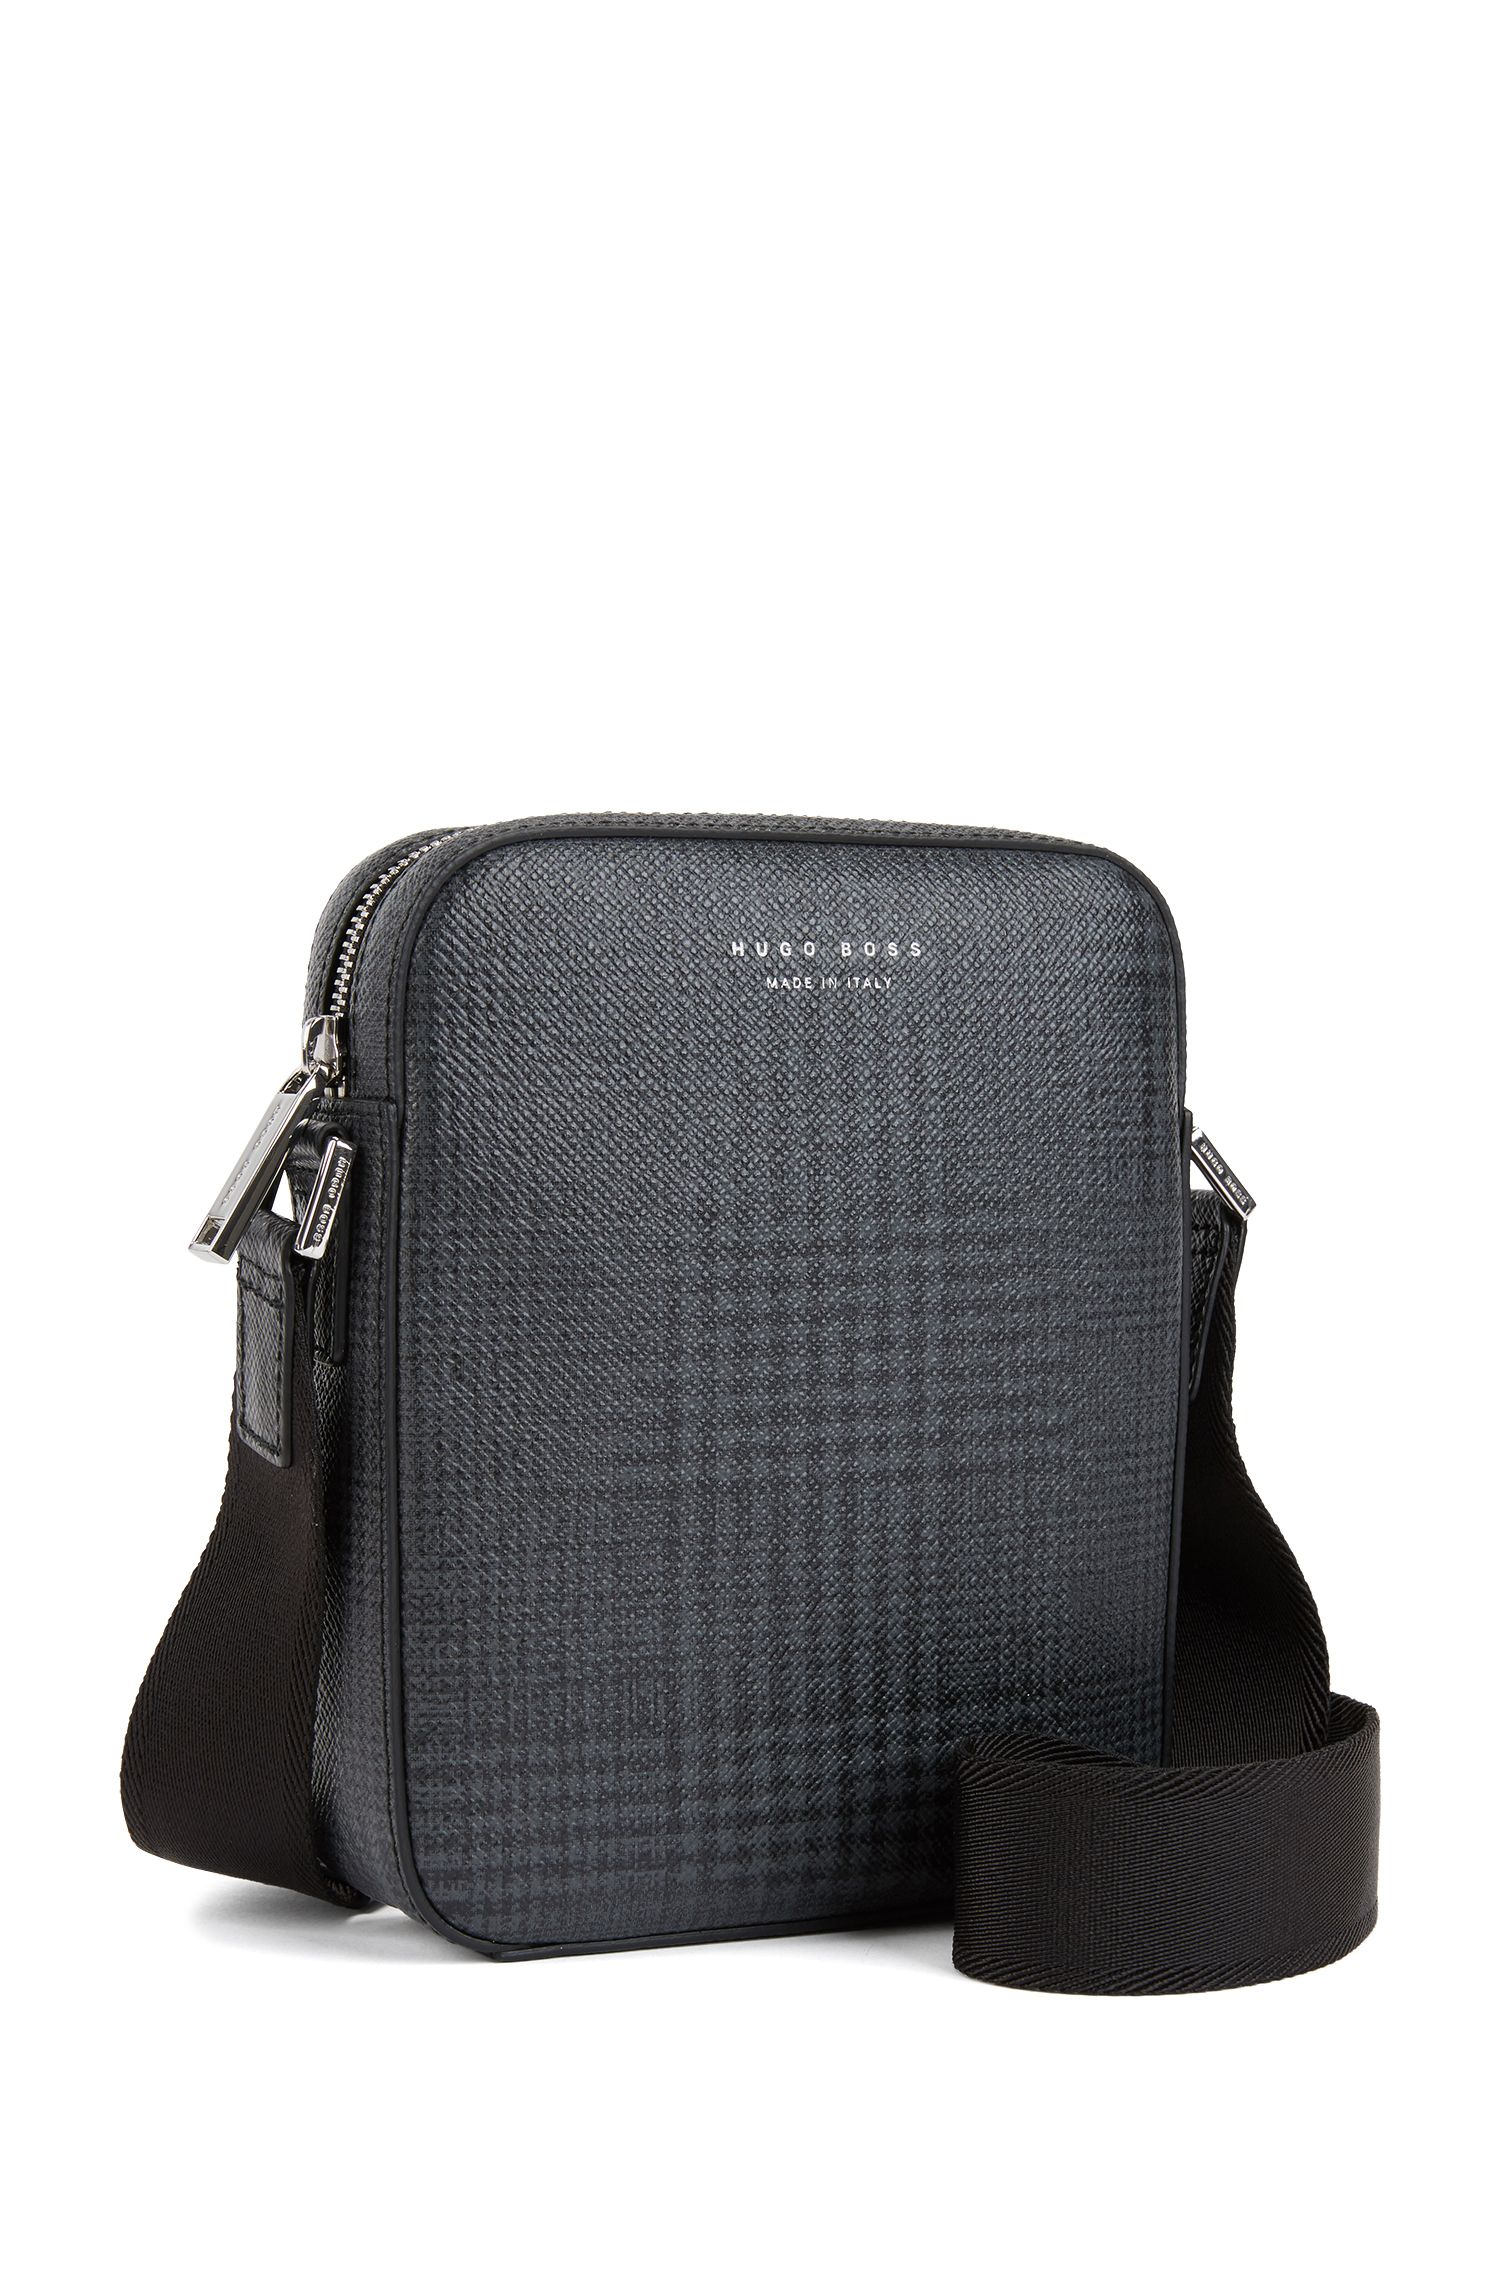 Signature Collection cross-body bag in checked calf leather, Patterned